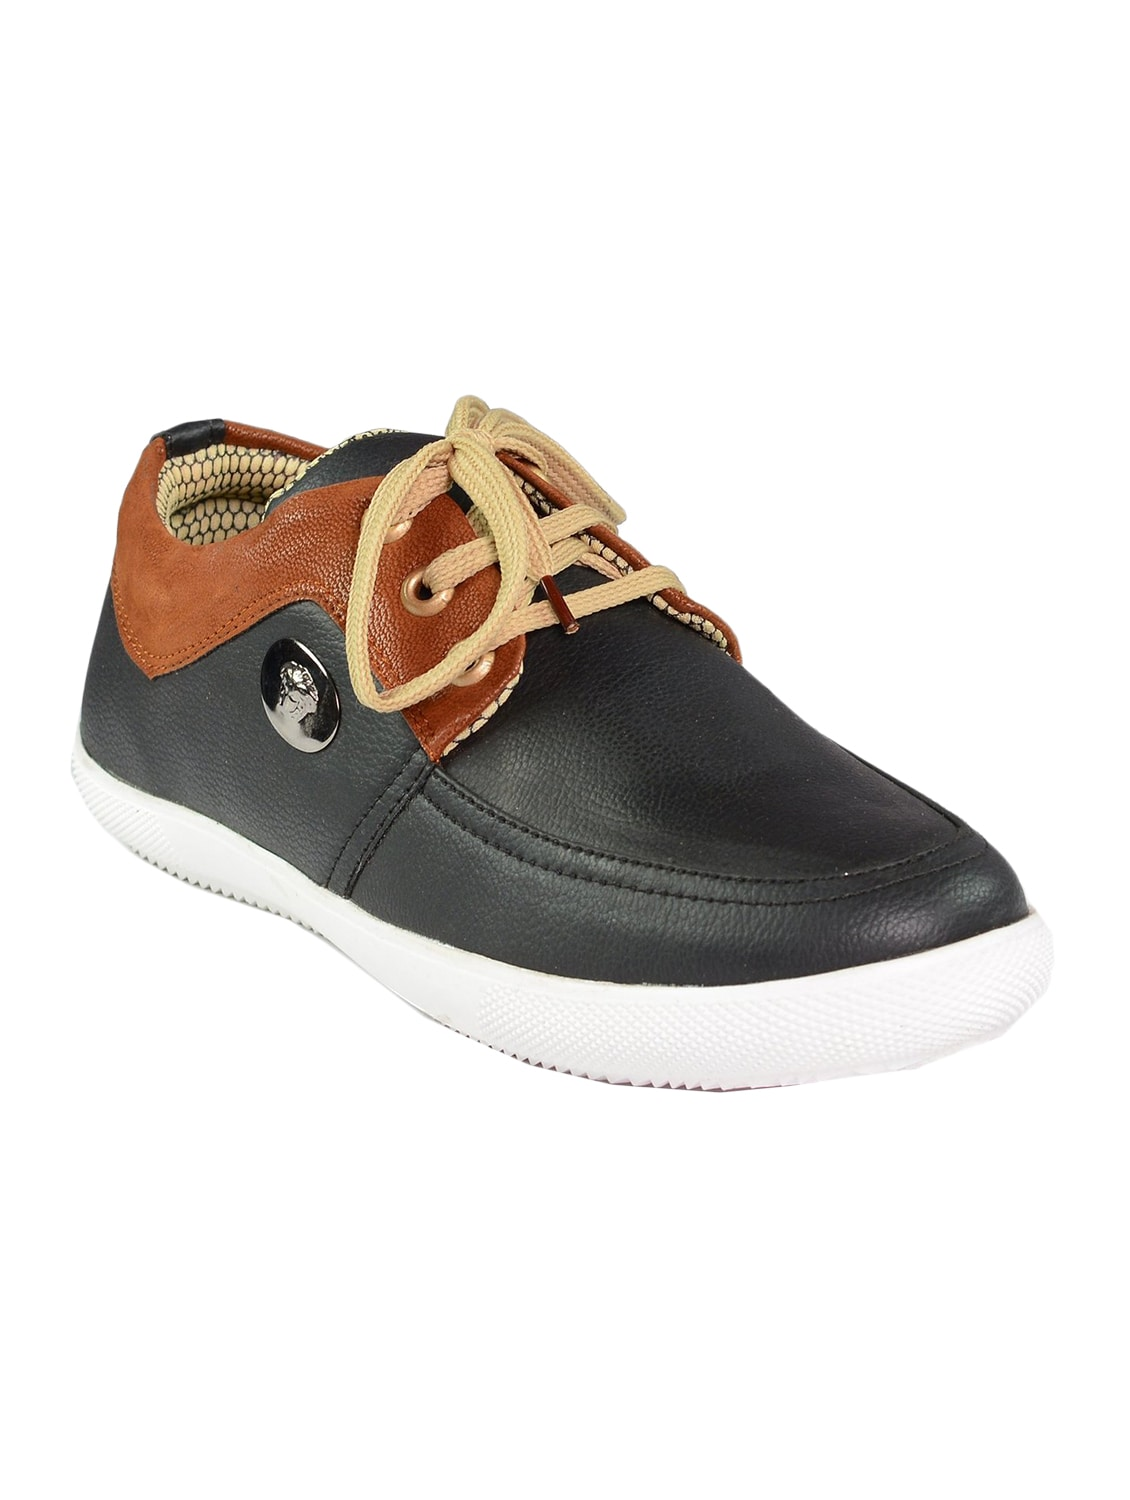 3e854f08b Buy Black Leatherette Lace Up Shoe for Men from Red Craft for ₹1299 at 0%  off | 2019 Limeroad.com